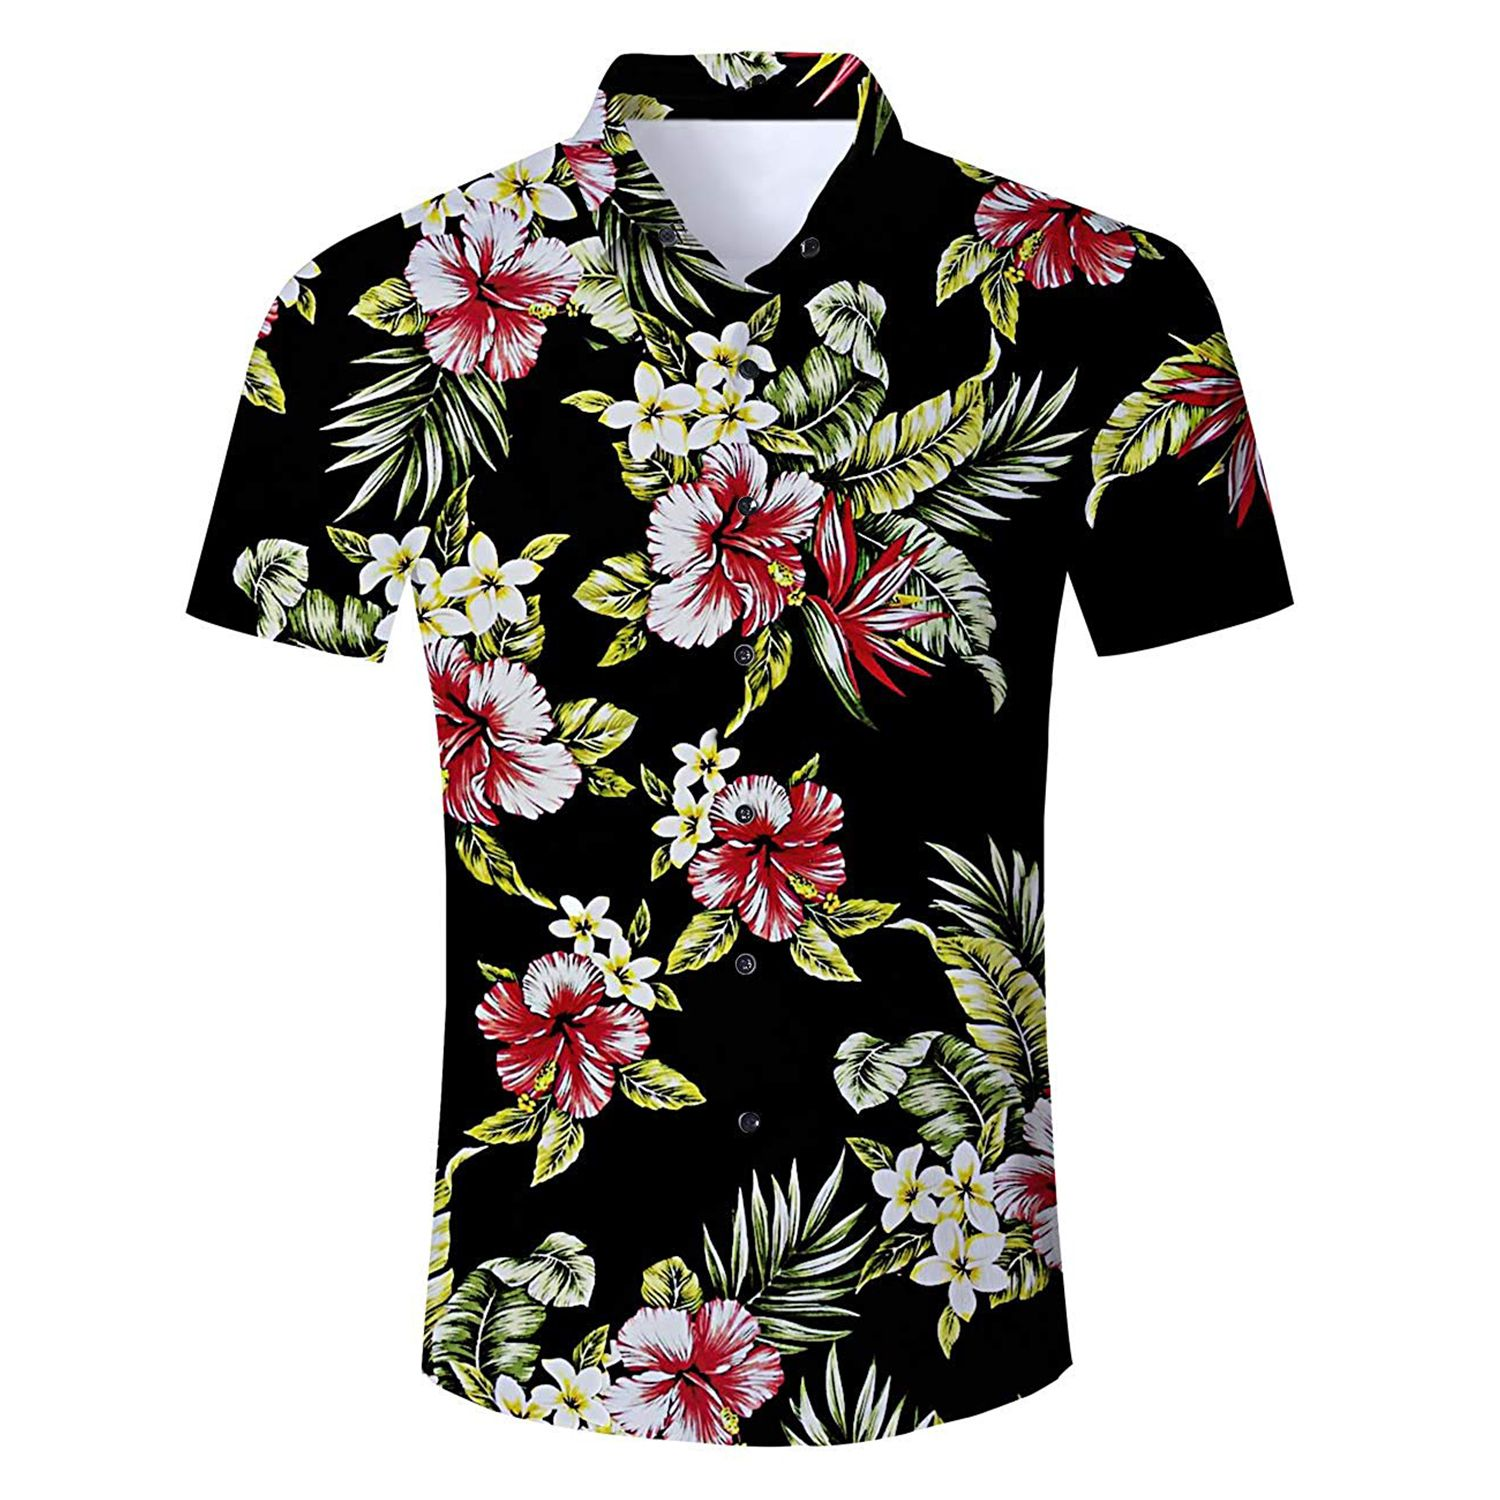 01b6cd06 Uideazone Men Hawaiian Shirts Summer 3D Printed Short Sleeve Button Down  Aloha Shirt